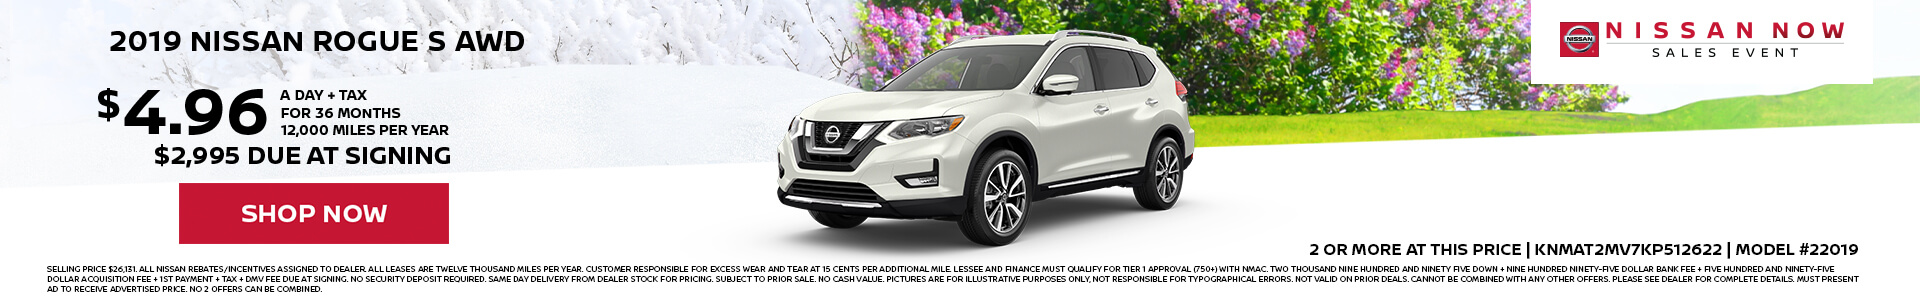 Nissan Rogue $4.96 Lease